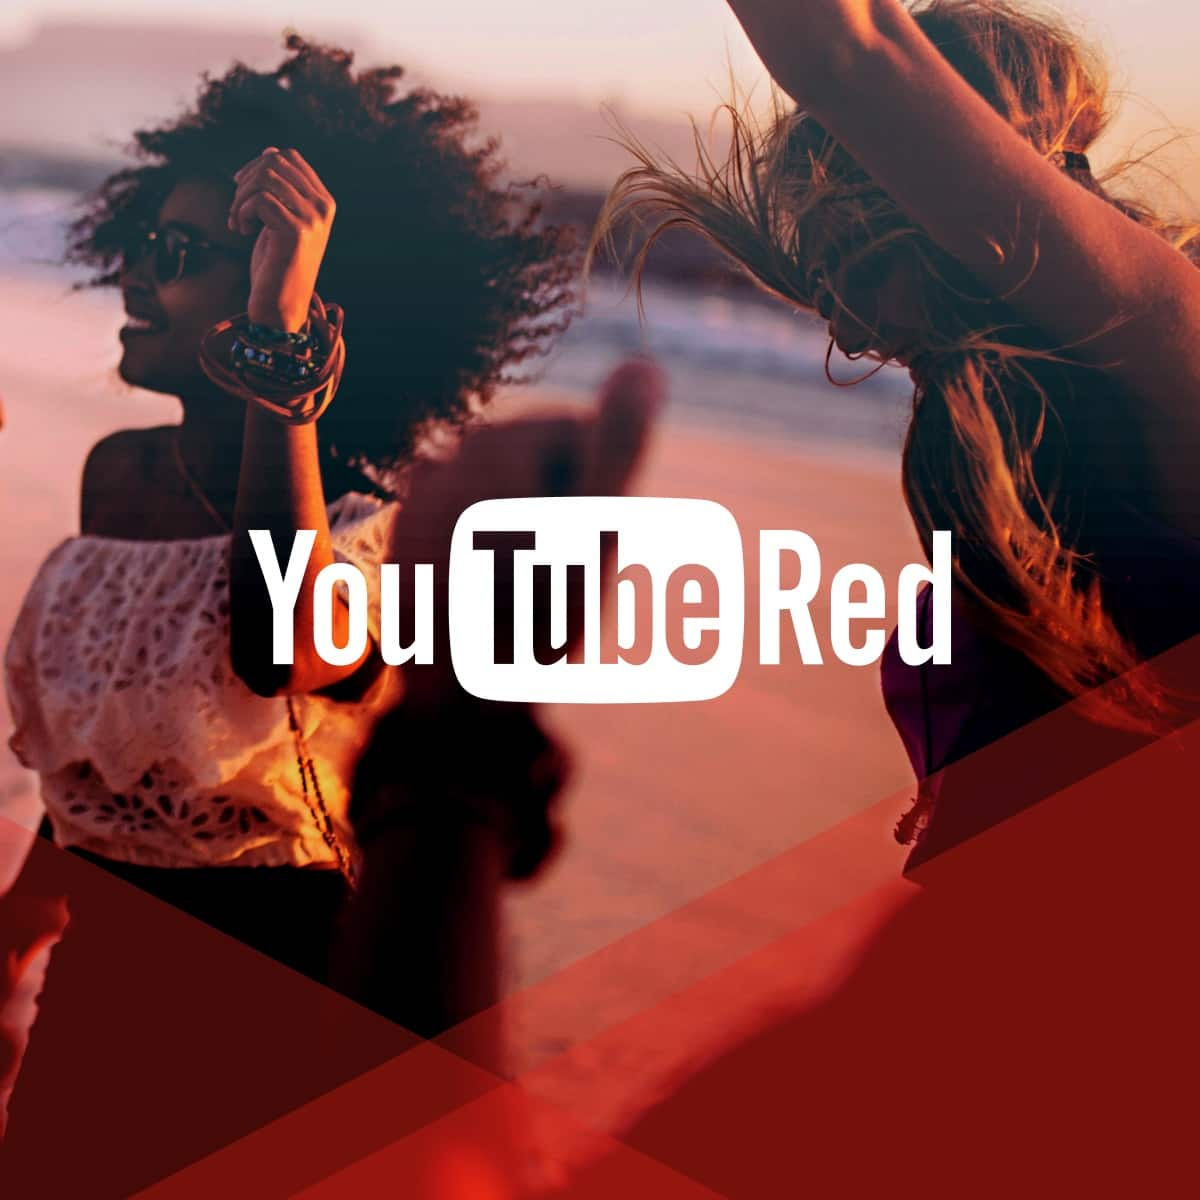 3-Months of YouTube Red + GooglePlay Music subscription for free/trial (New subscribers only)